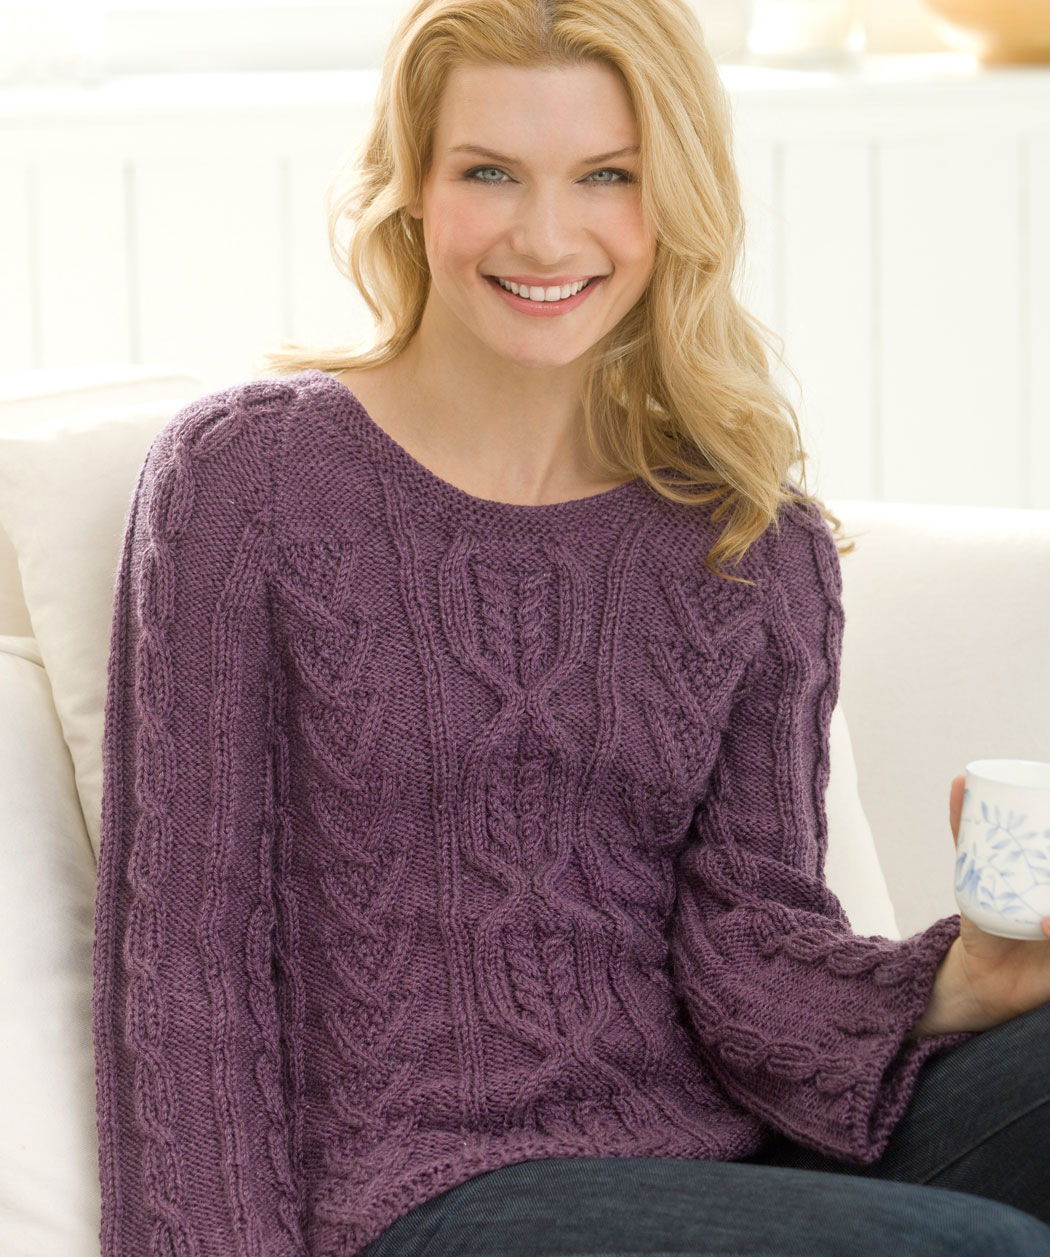 Easy Knitting Pattern For Sweater : Cable Knit Sweater Patterns A Knitting Blog